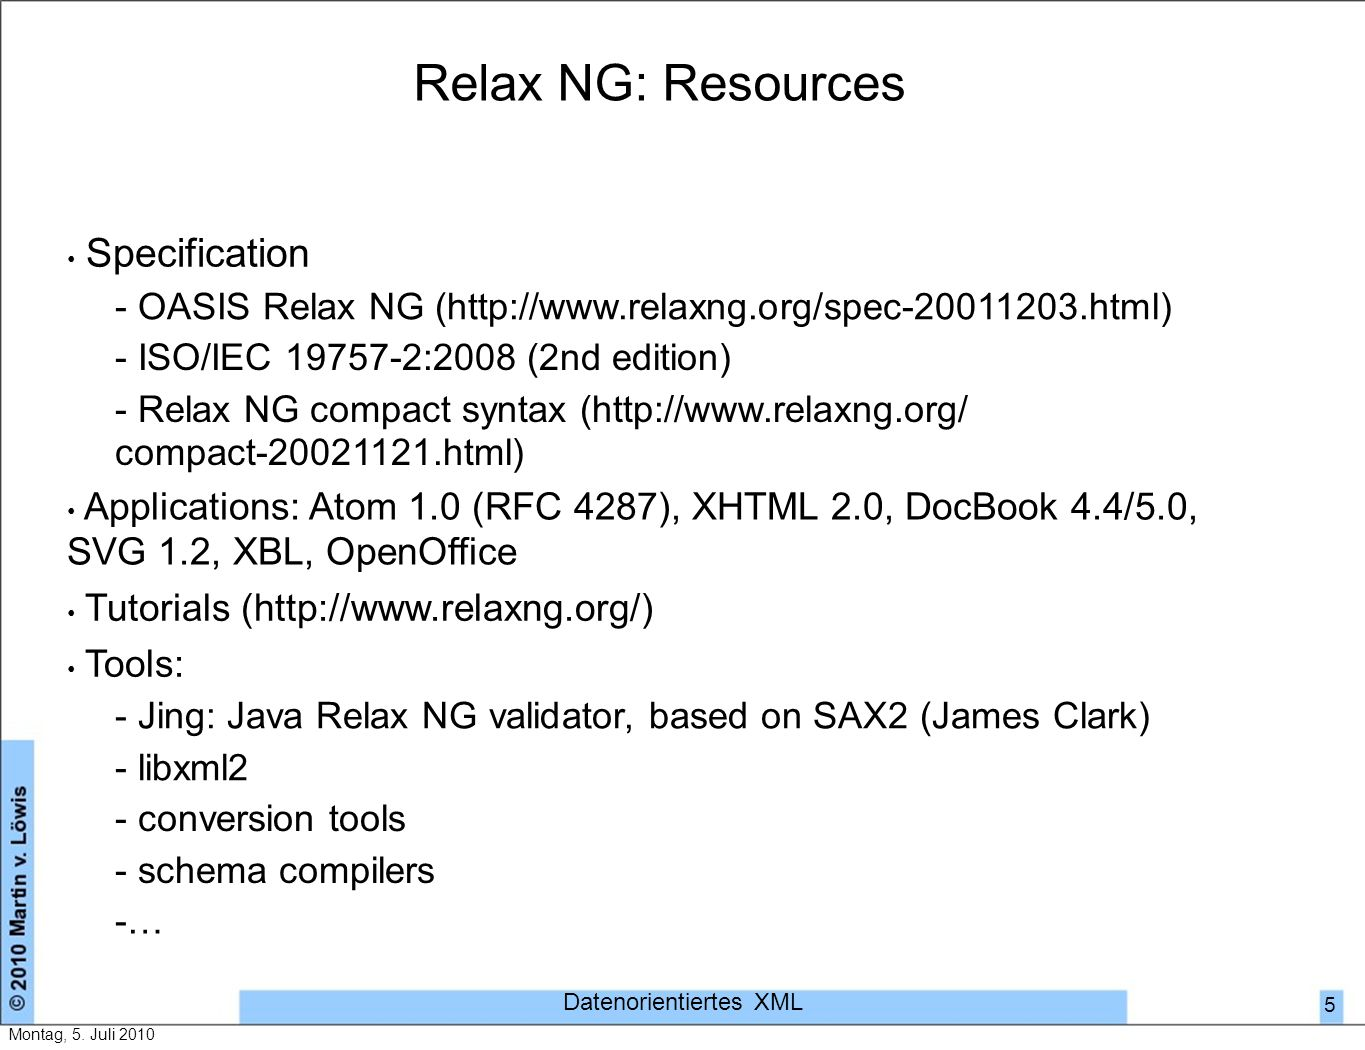 Relax NG: Resources Specification - OASIS Relax NG (http://www.relaxng.org/spec-20011203.html) - ISO/IEC 19757-2:2008 (2nd edition) - Relax NG compact syntax (http://www.relaxng.org/ compact-20021121.html) Applications: Atom 1.0 (RFC 4287), XHTML 2.0, DocBook 4.4/5.0, SVG 1.2, XBL, OpenOffice Tutorials (http://www.relaxng.org/) Tools: - Jing: Java Relax NG validator, based on SAX2 (James Clark) - libxml2 - conversion tools - schema compilers -…-… Datenorientiertes XML 5 Montag, 5.